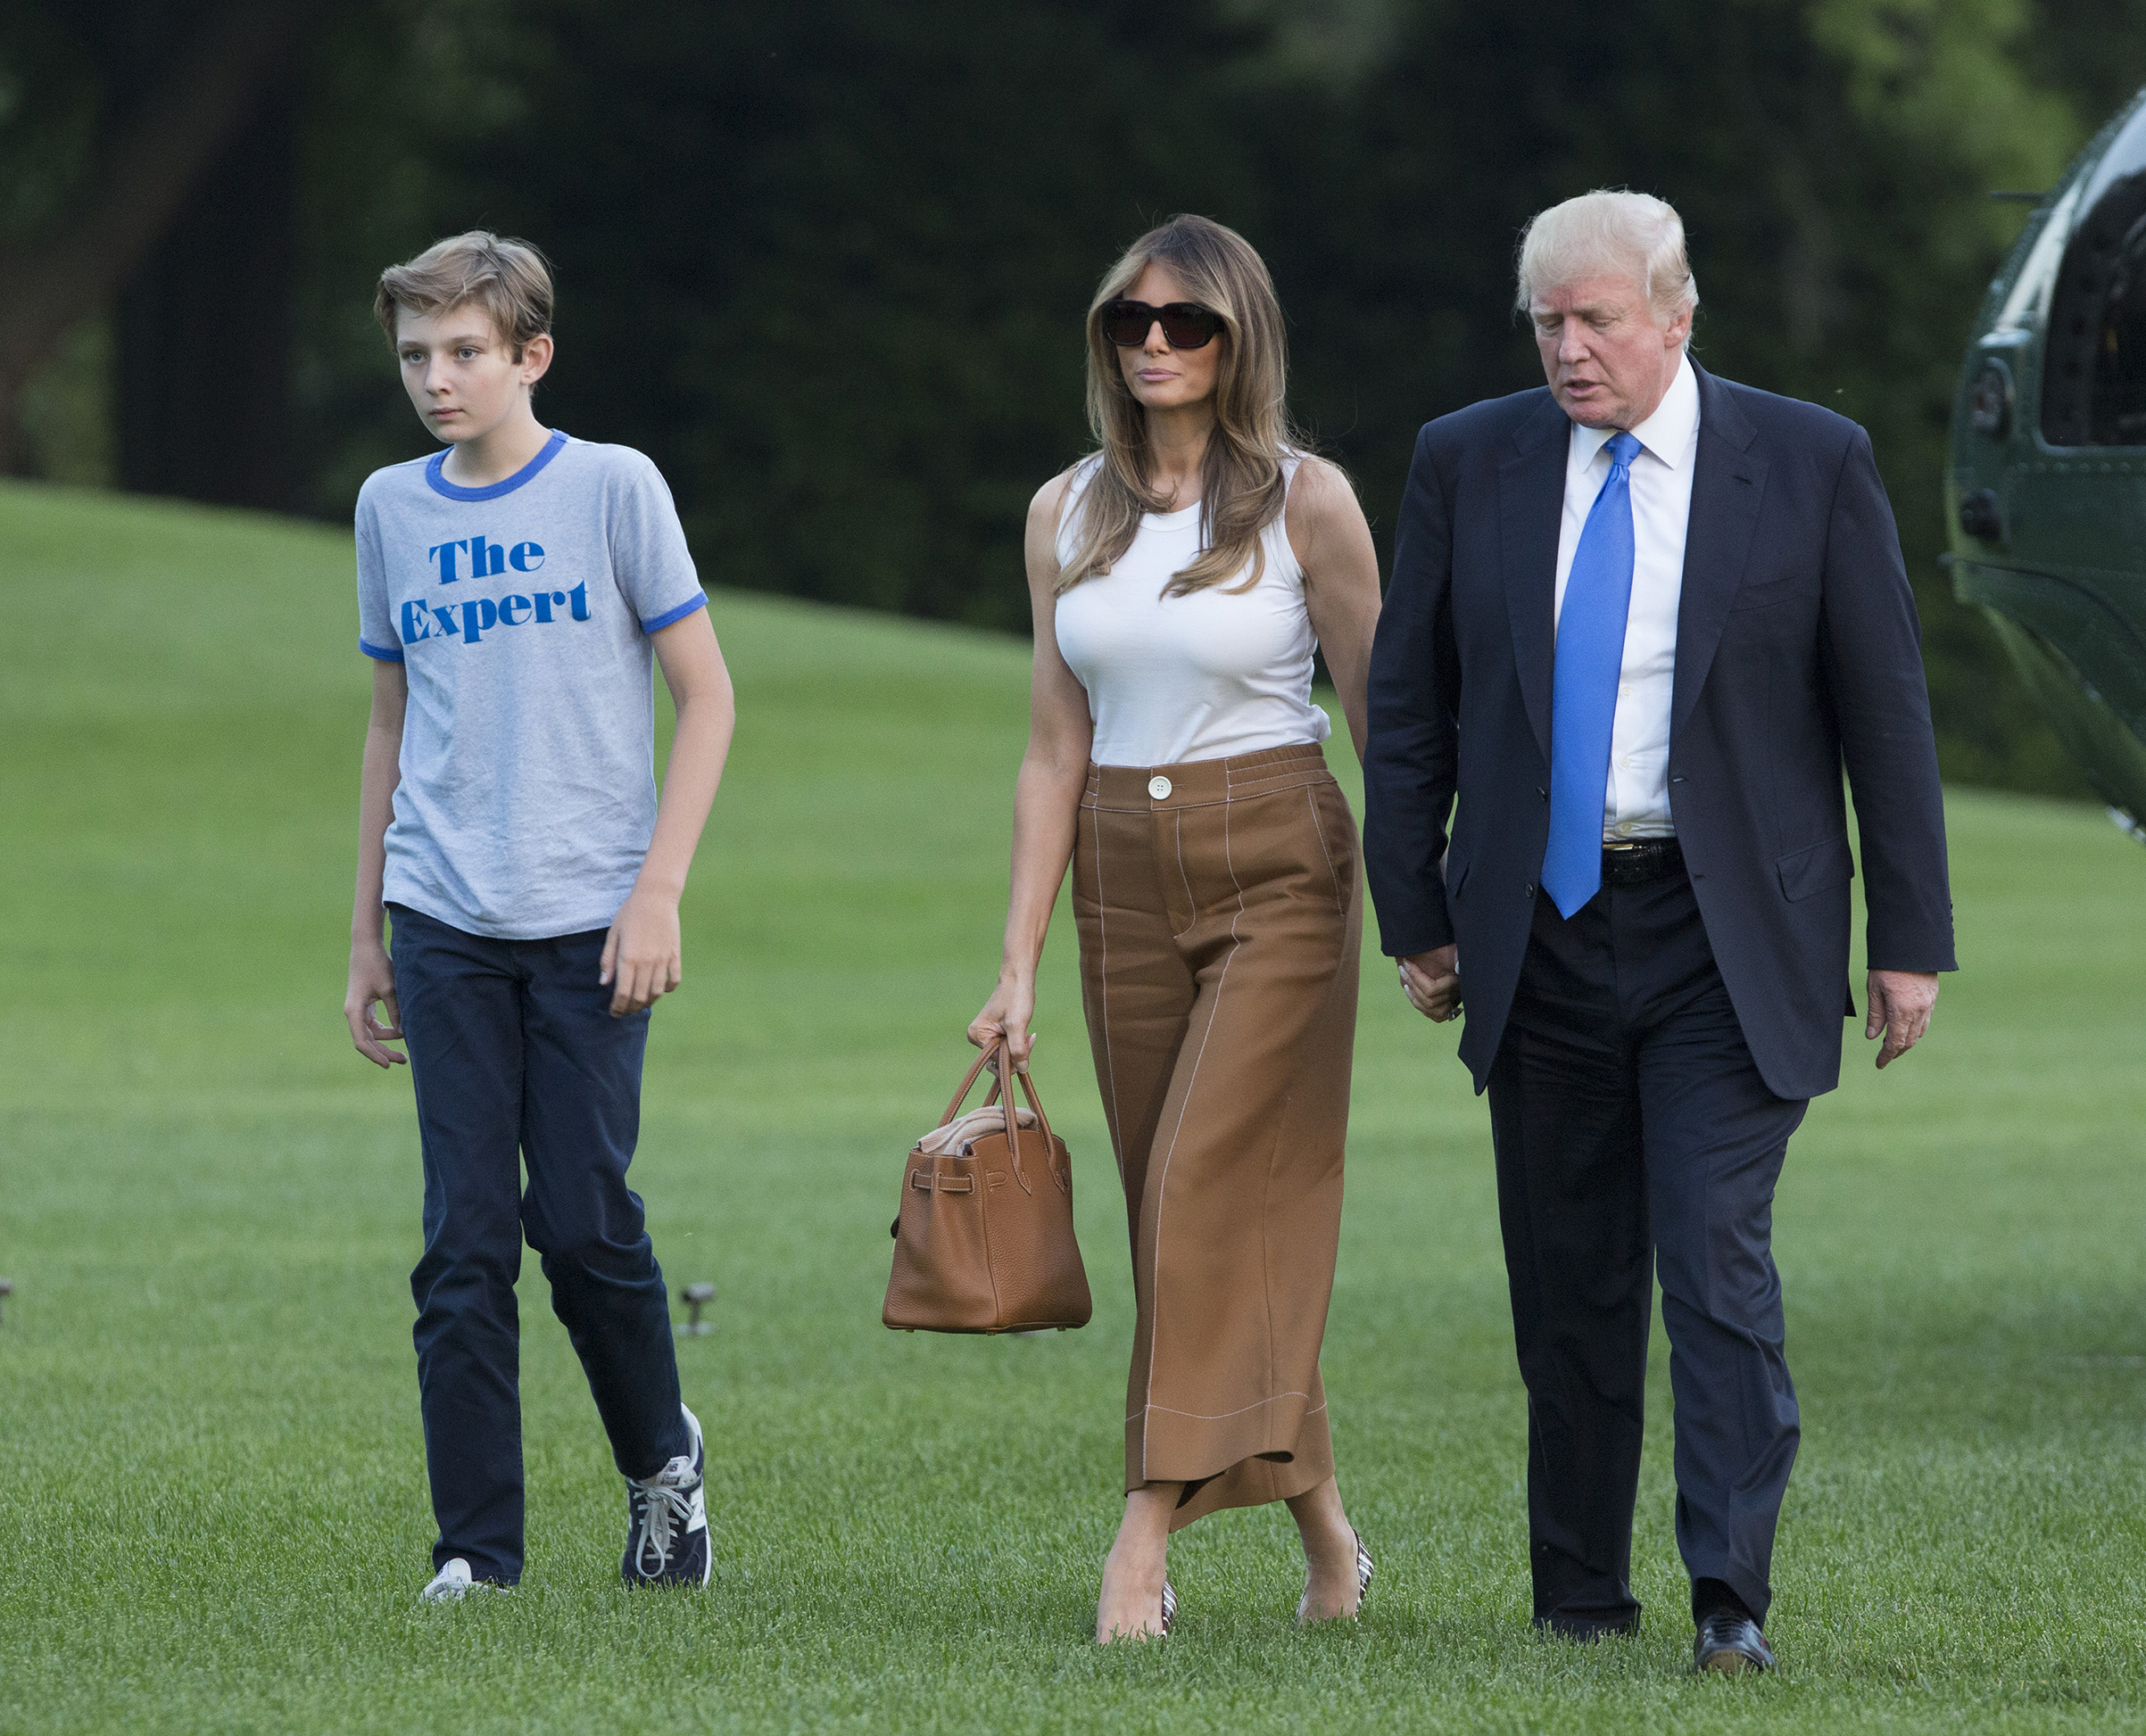 President Donald Trump, first lady Melania Trump wearing tan wide-legged pants by Bally with a white Dolce & Gabbana tank, and their son Barron Trump arrive at the White House June 11, 2017.